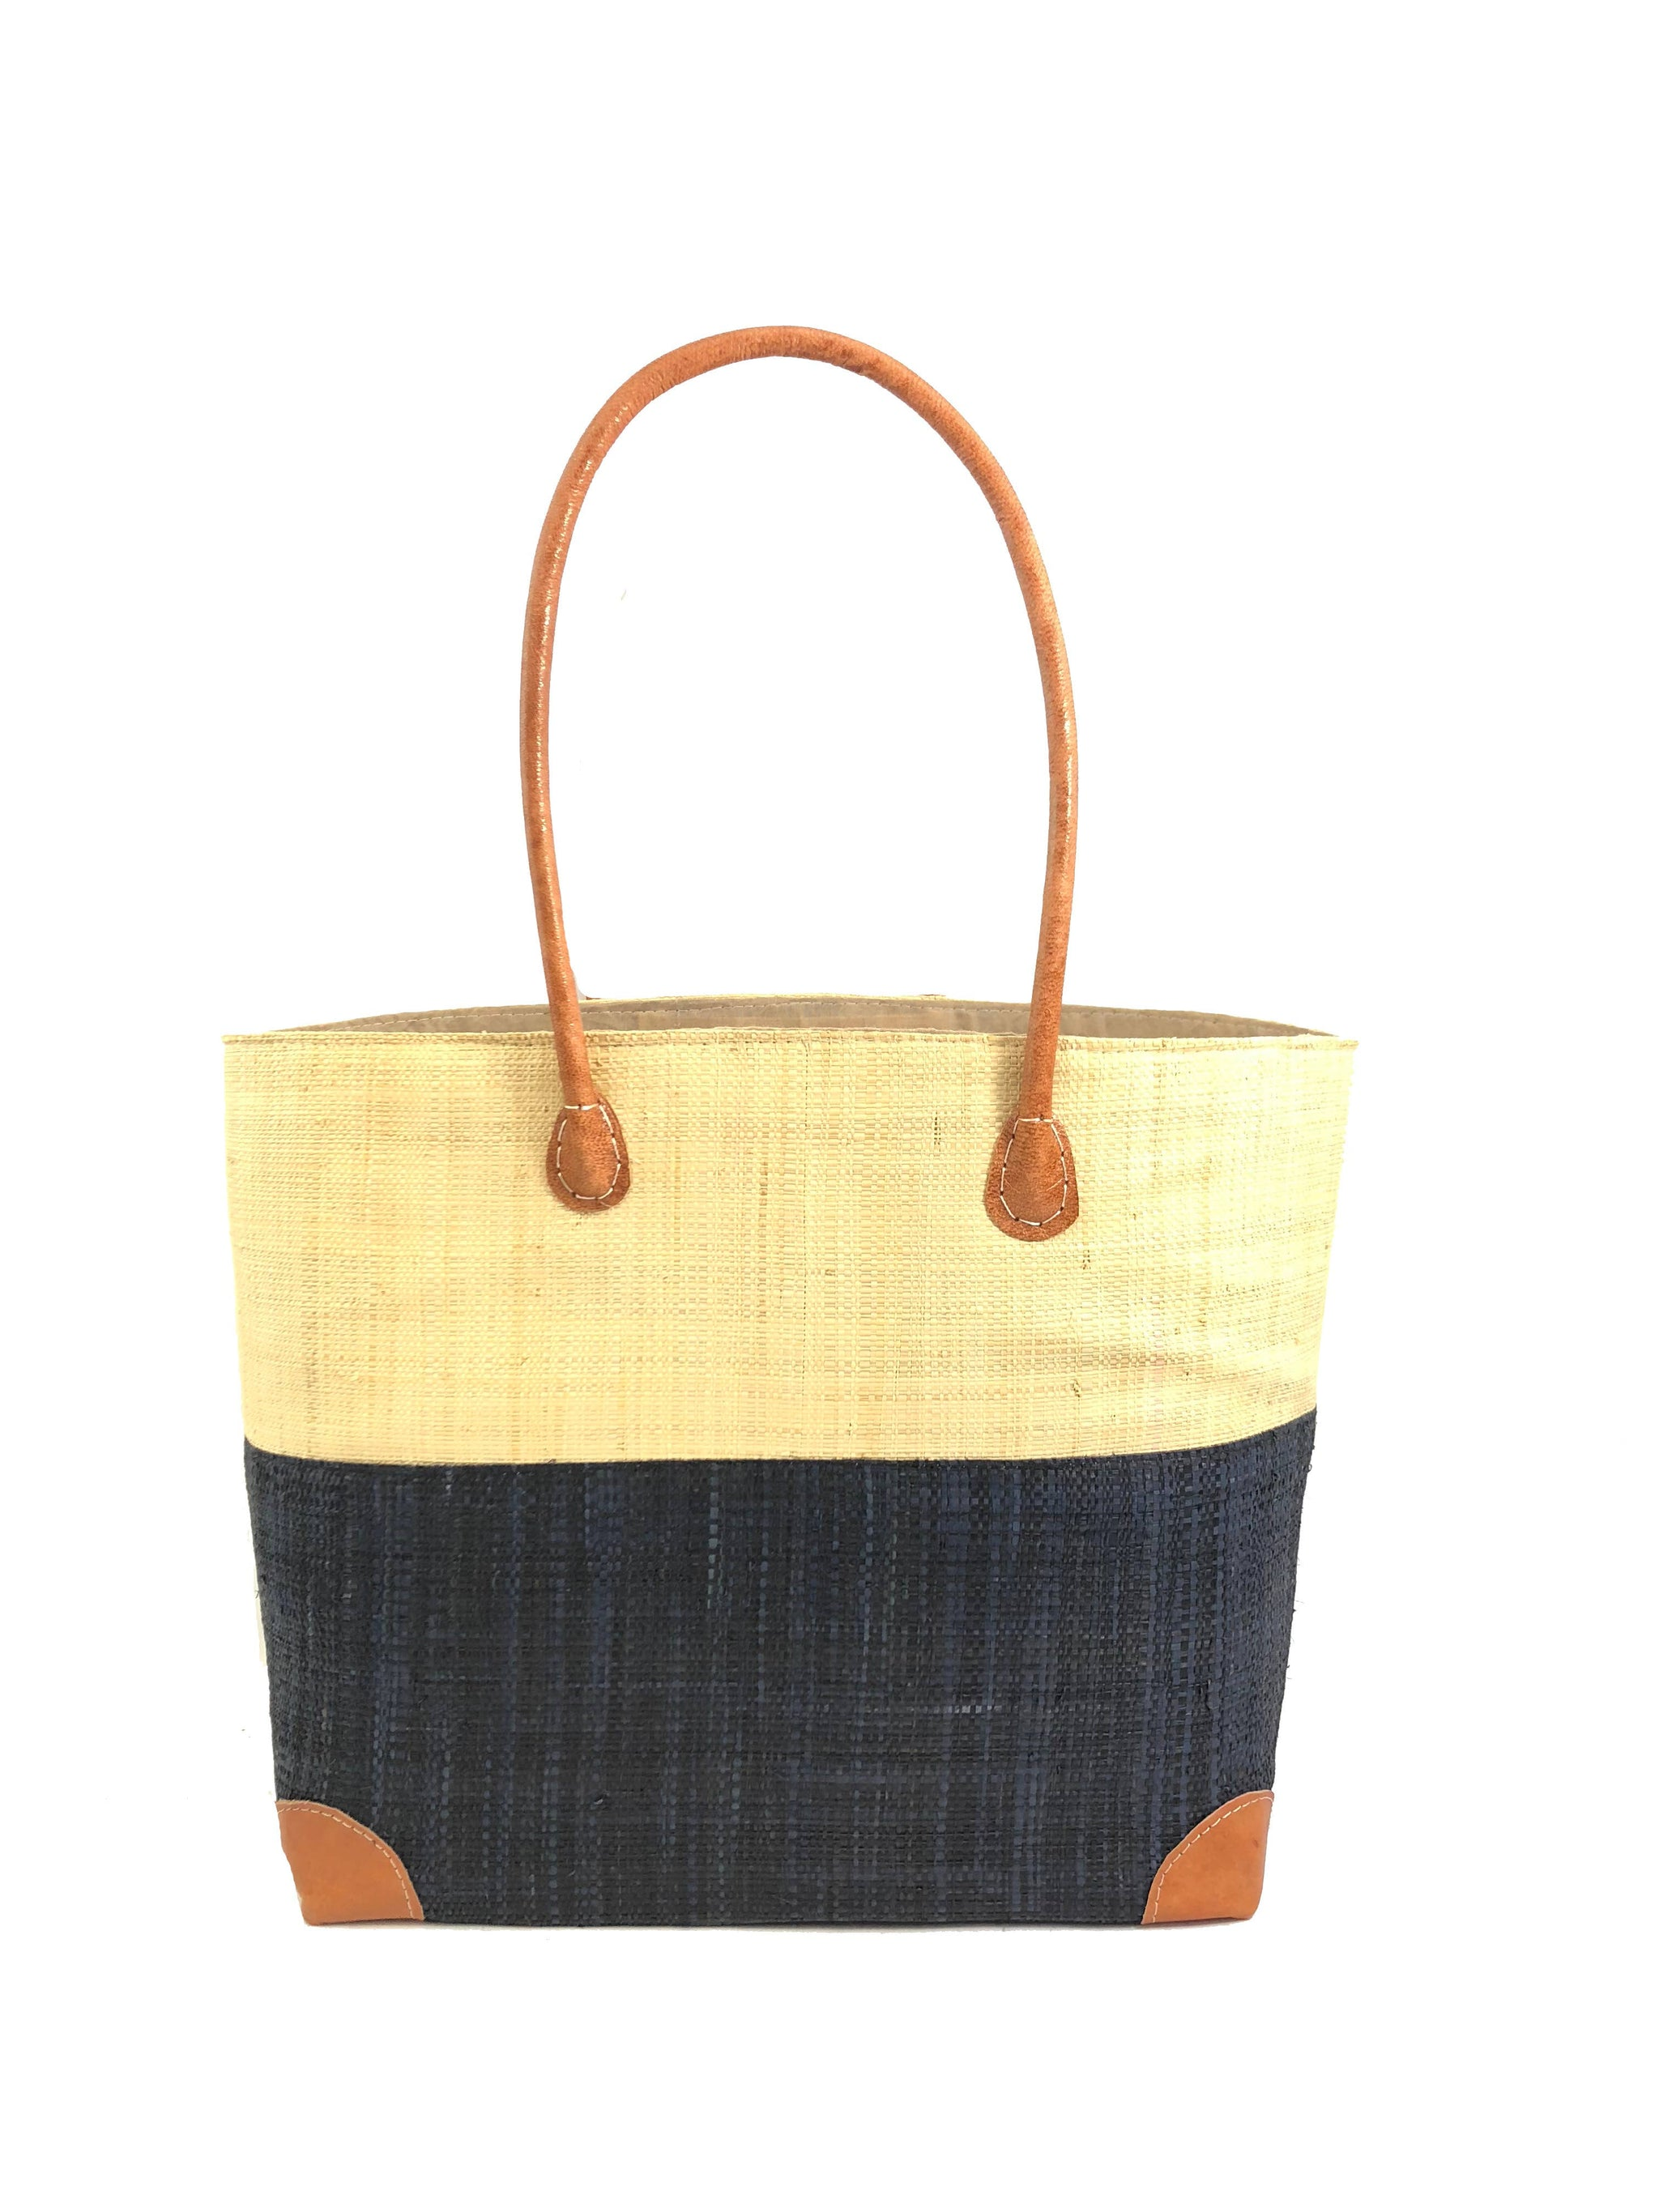 Trinidad Two-Tone Straw Handbag